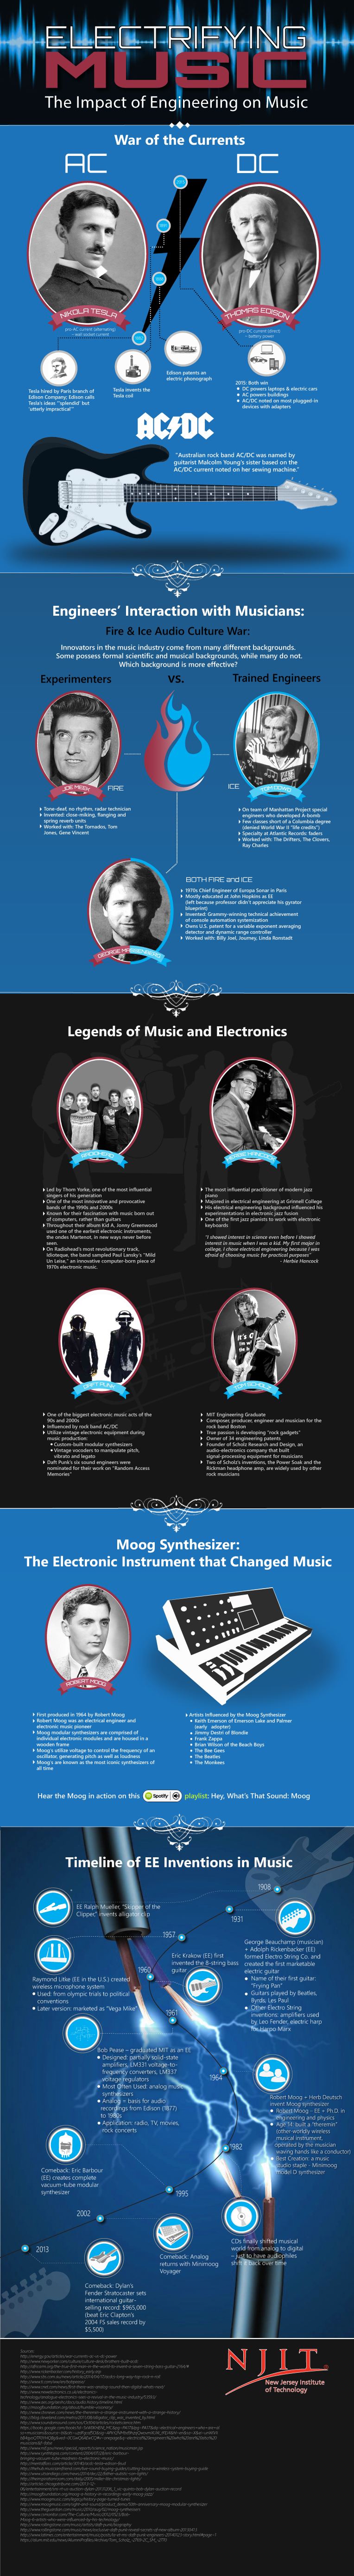 Electrifying Music: The Impact of Engineering on Music #Infographic